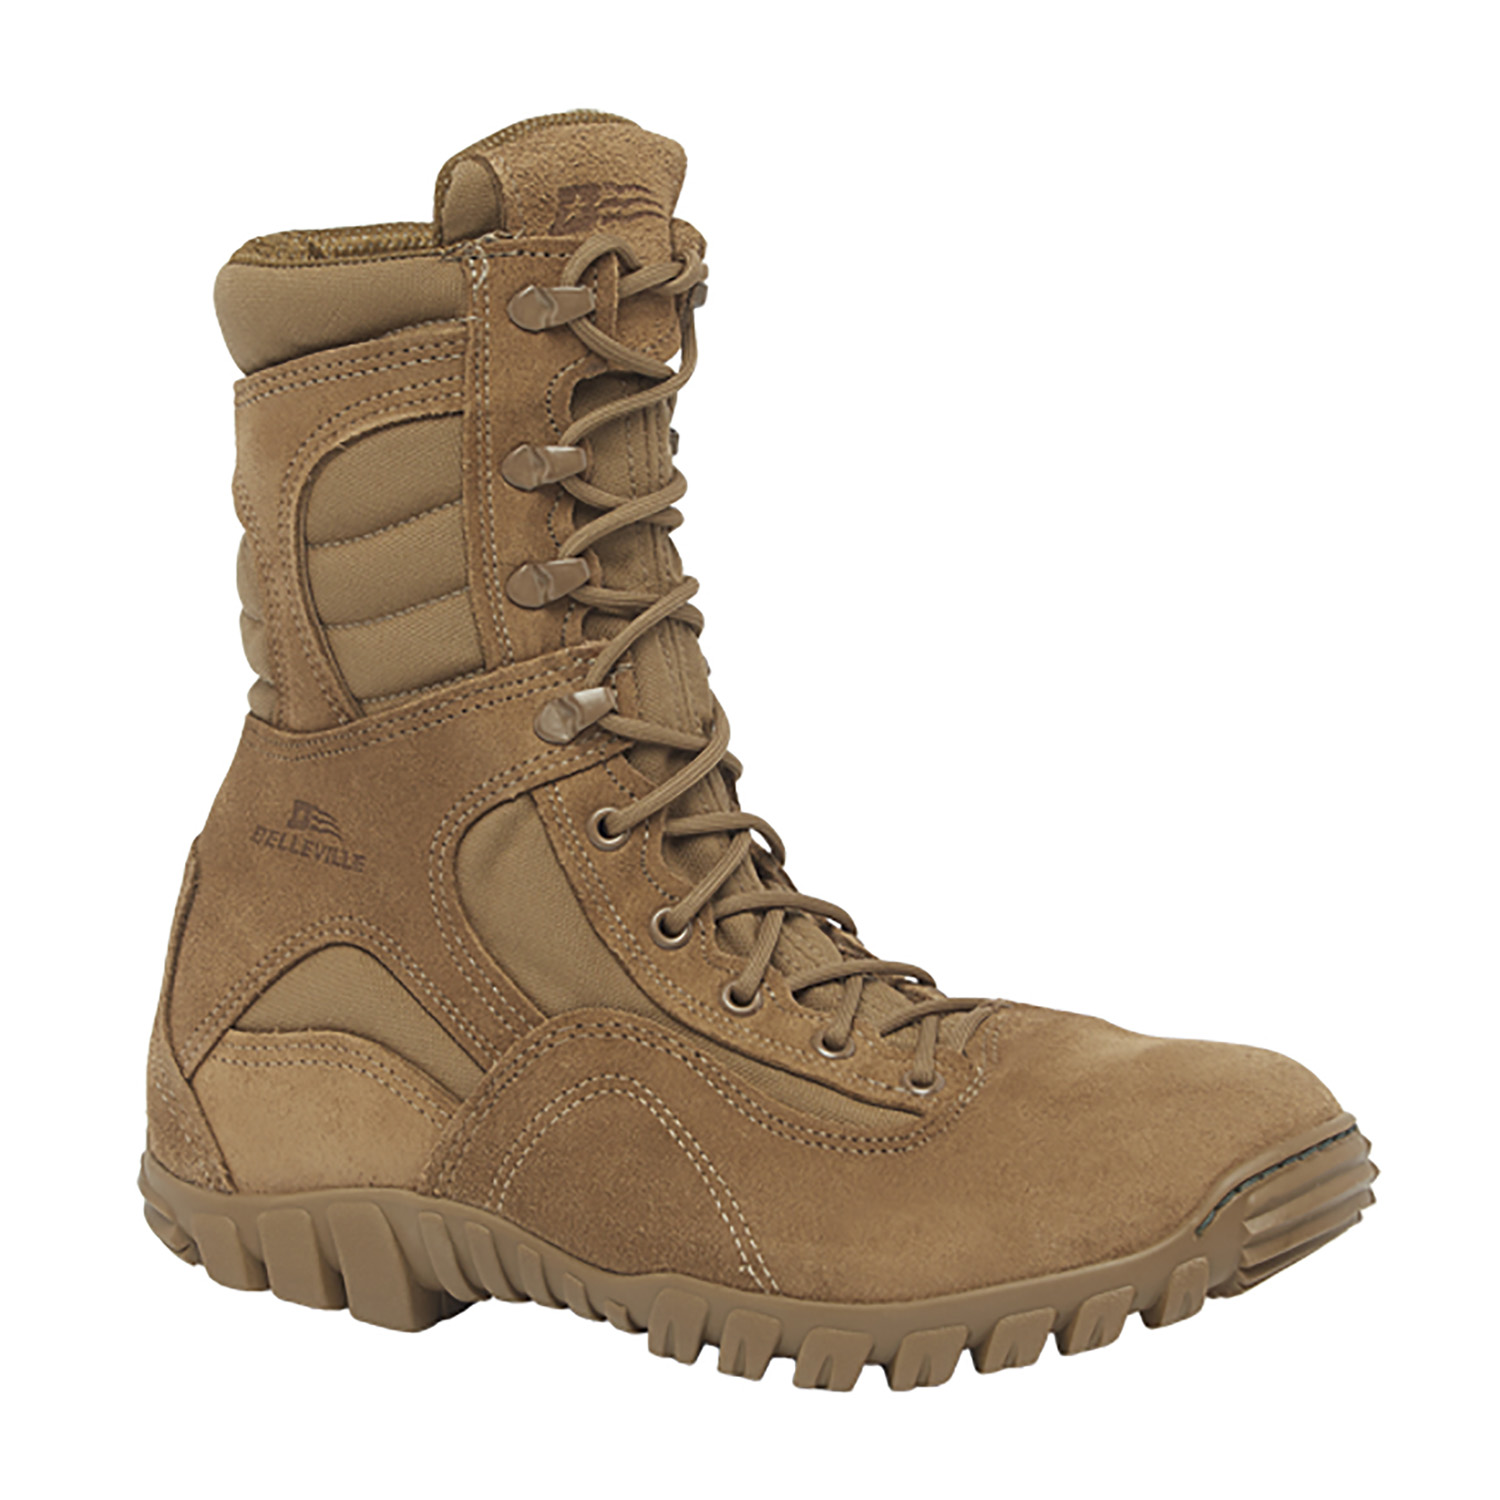 Belleville Hot Weather Hybrid Assault Boot (Coyote)